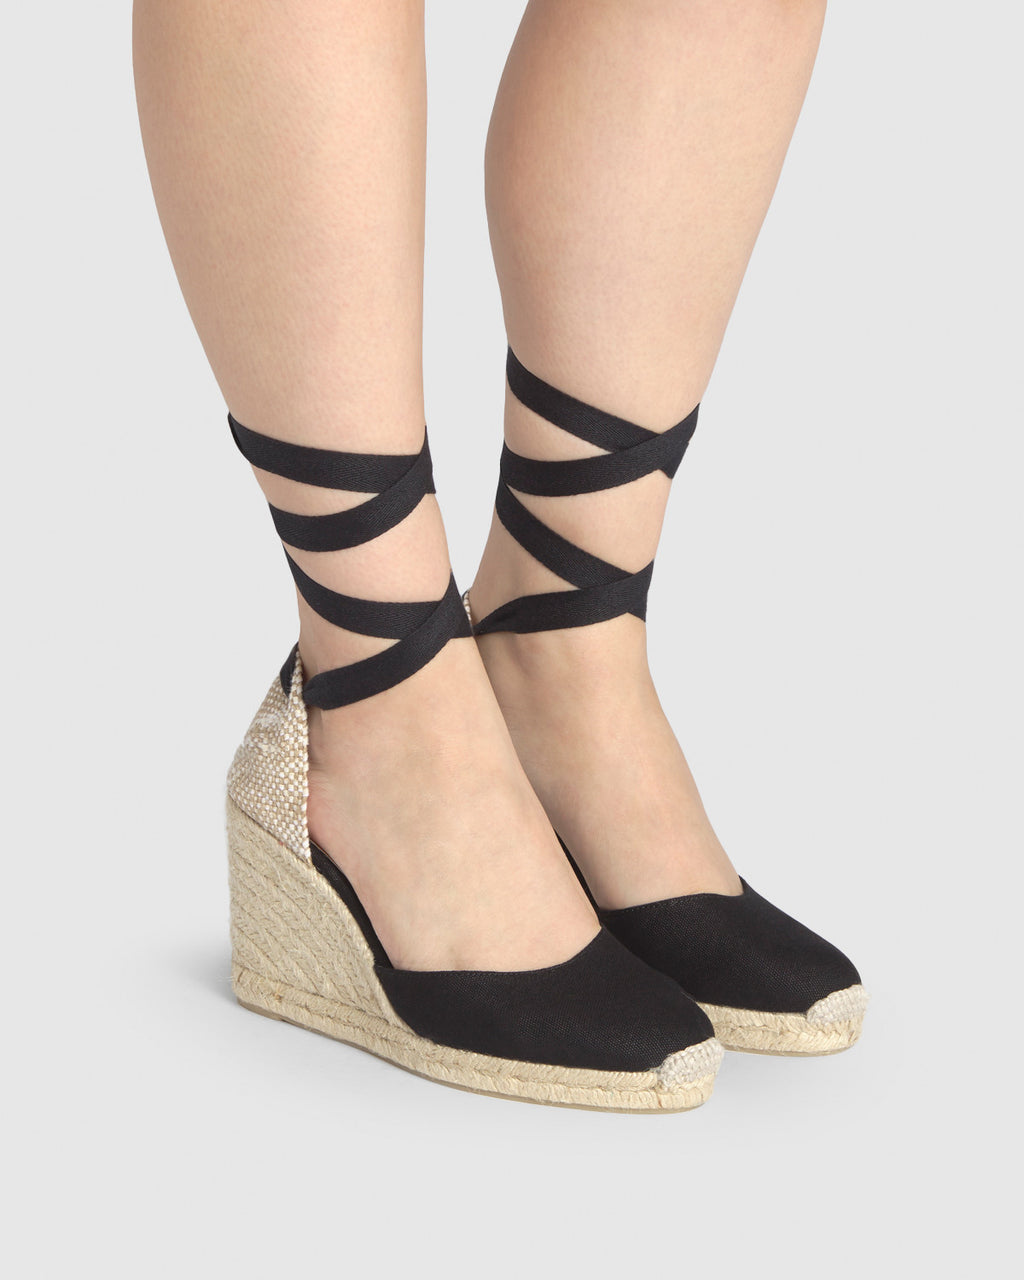 Castaner Carina 8 Wedge Espadrille - Black Canvas